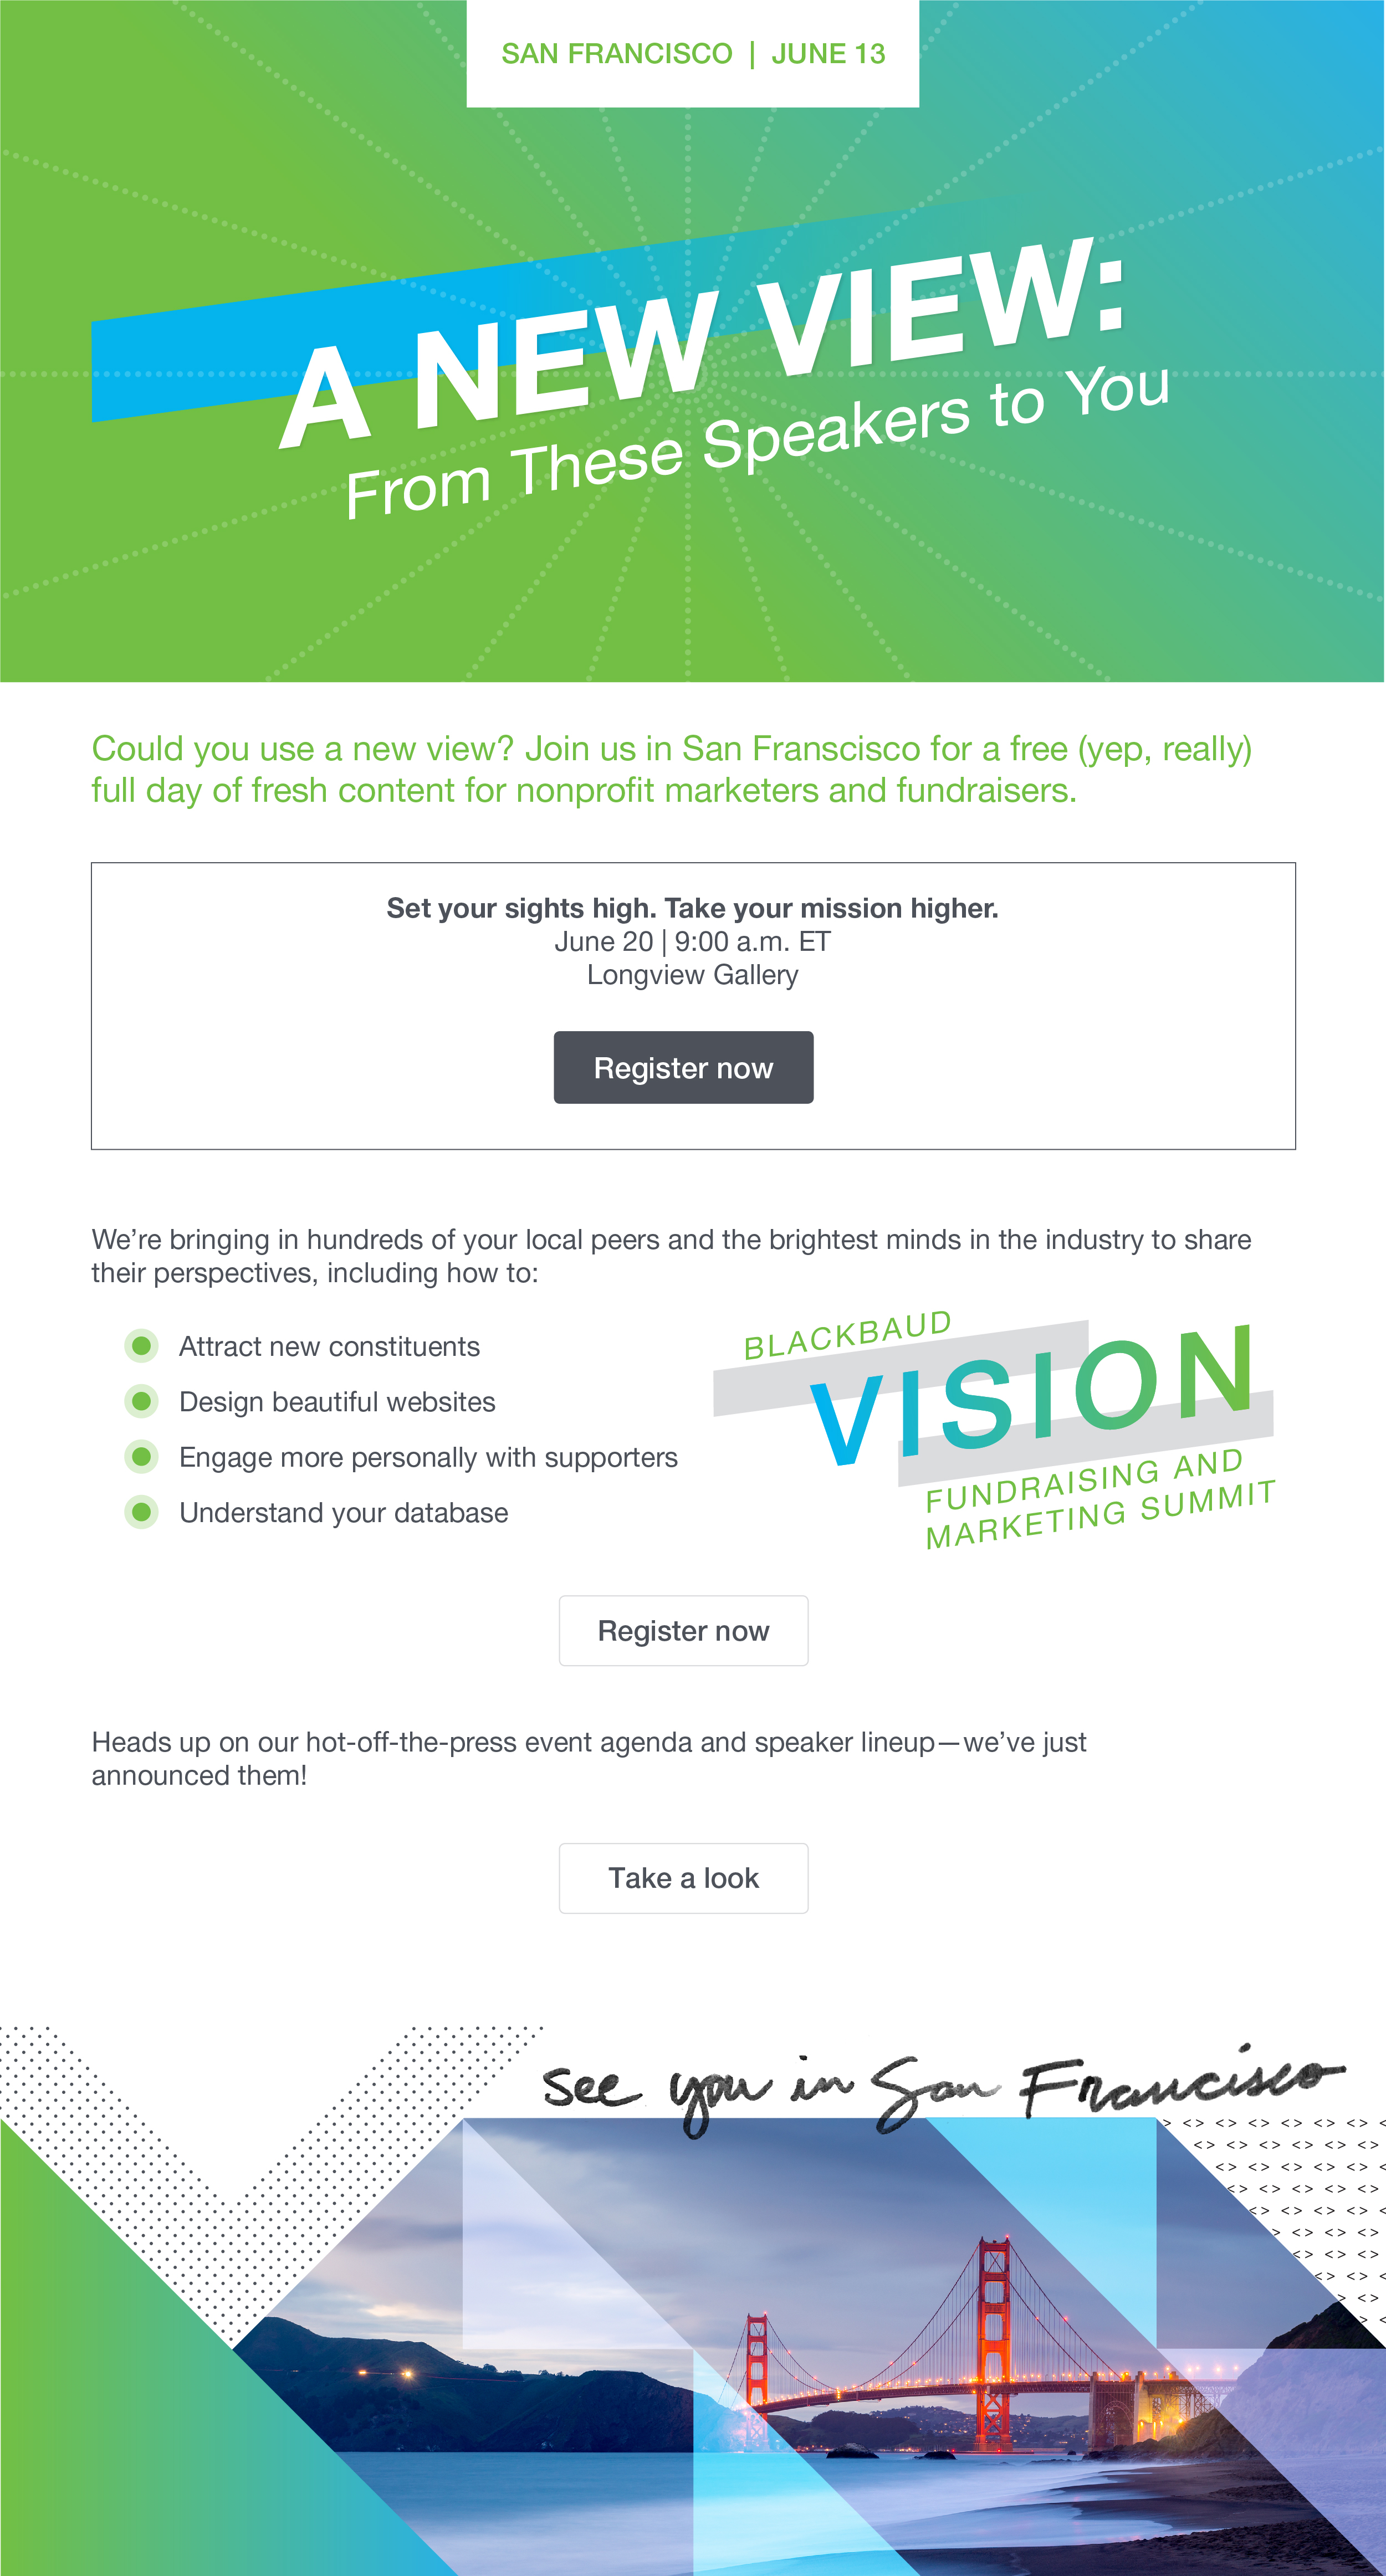 SFO Vision Events Email by Sam Stone